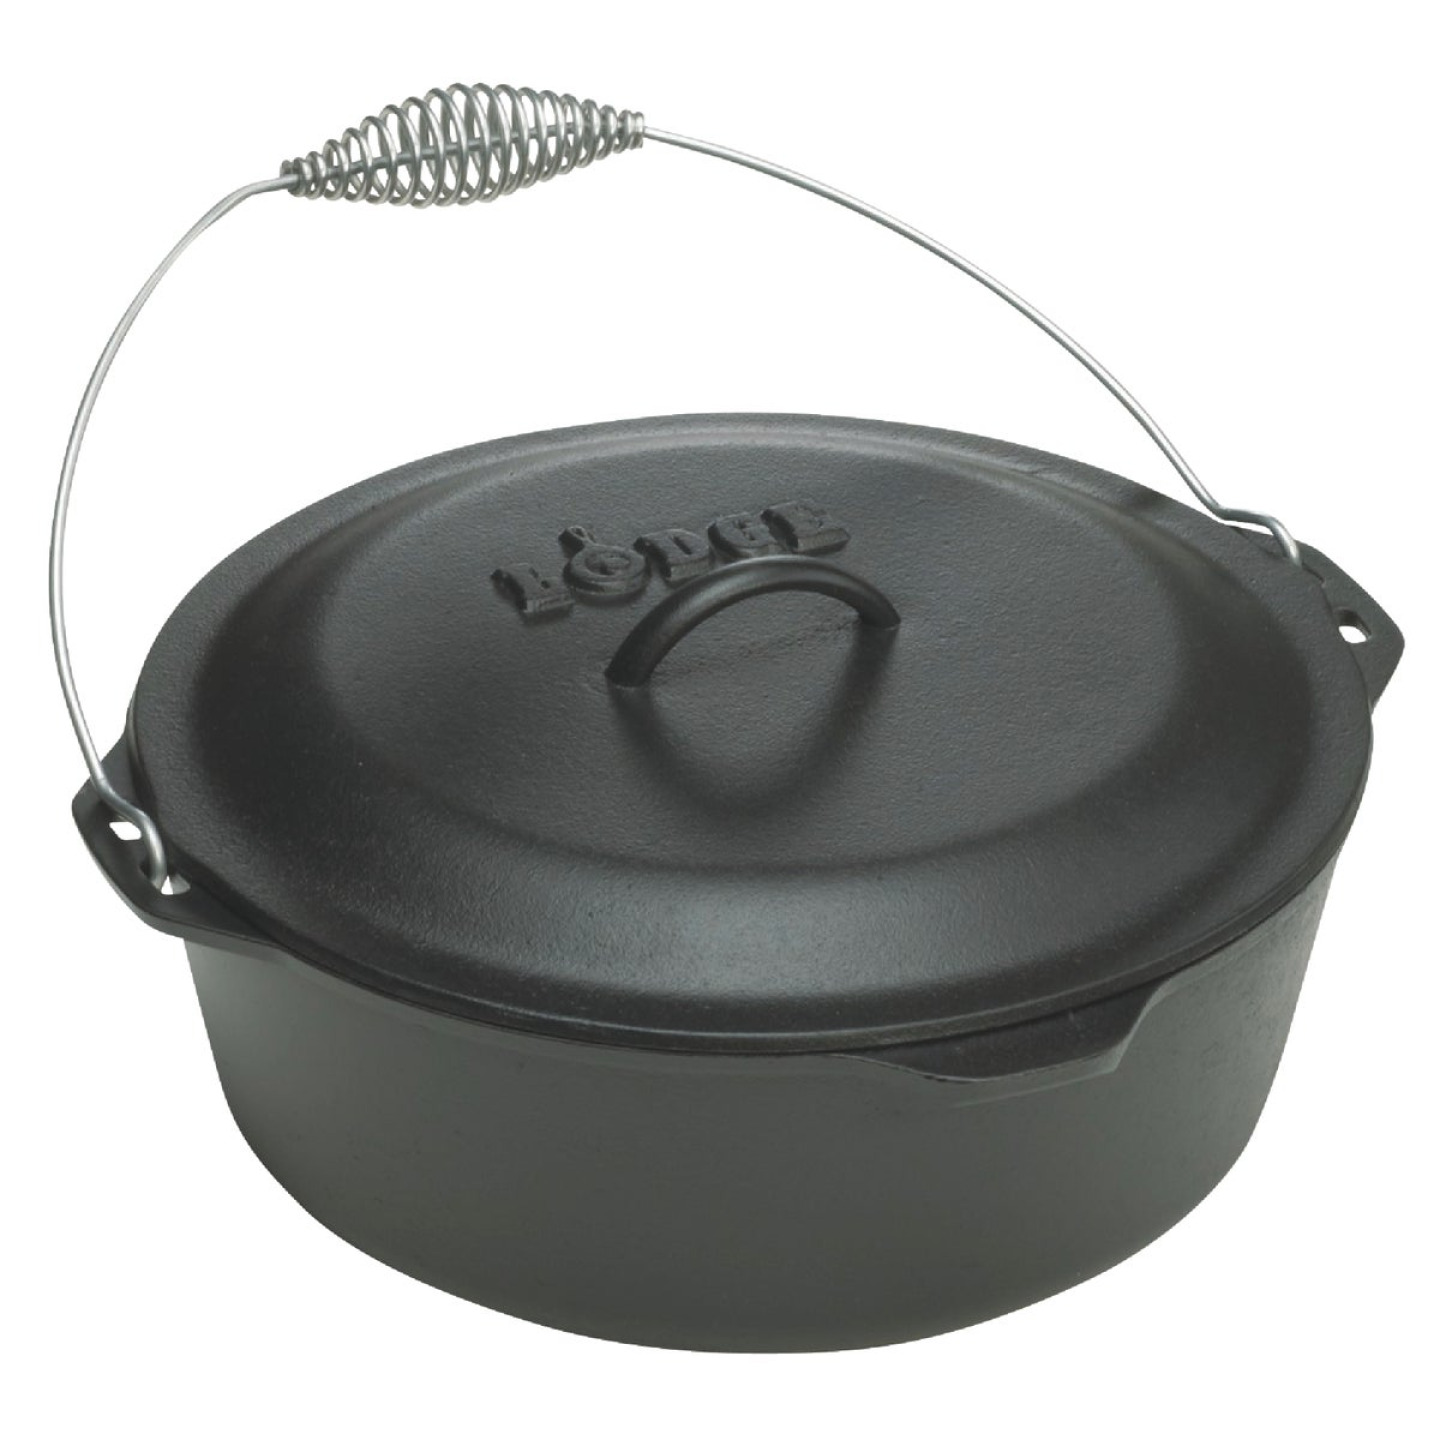 Lodge 5 Qt. Dutch Oven With Iron Cover Image 1